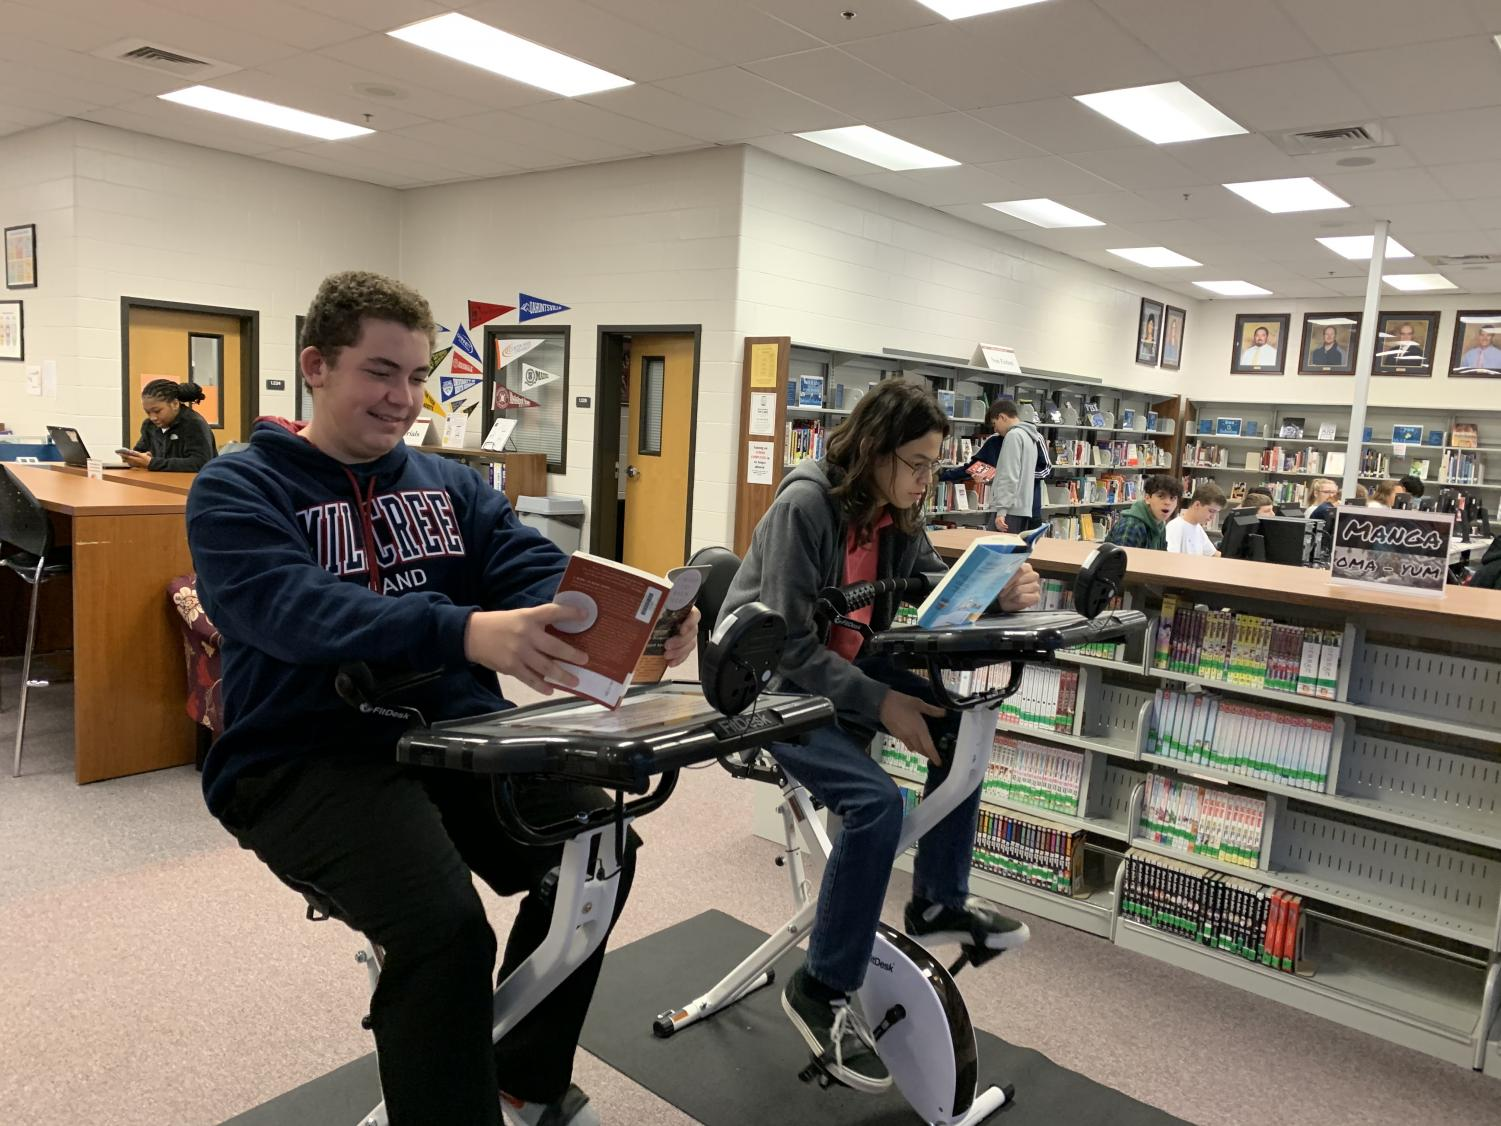 Students Cade Jones, 9, and Matthew Willis, 9, reading books while riding bikes in the media center